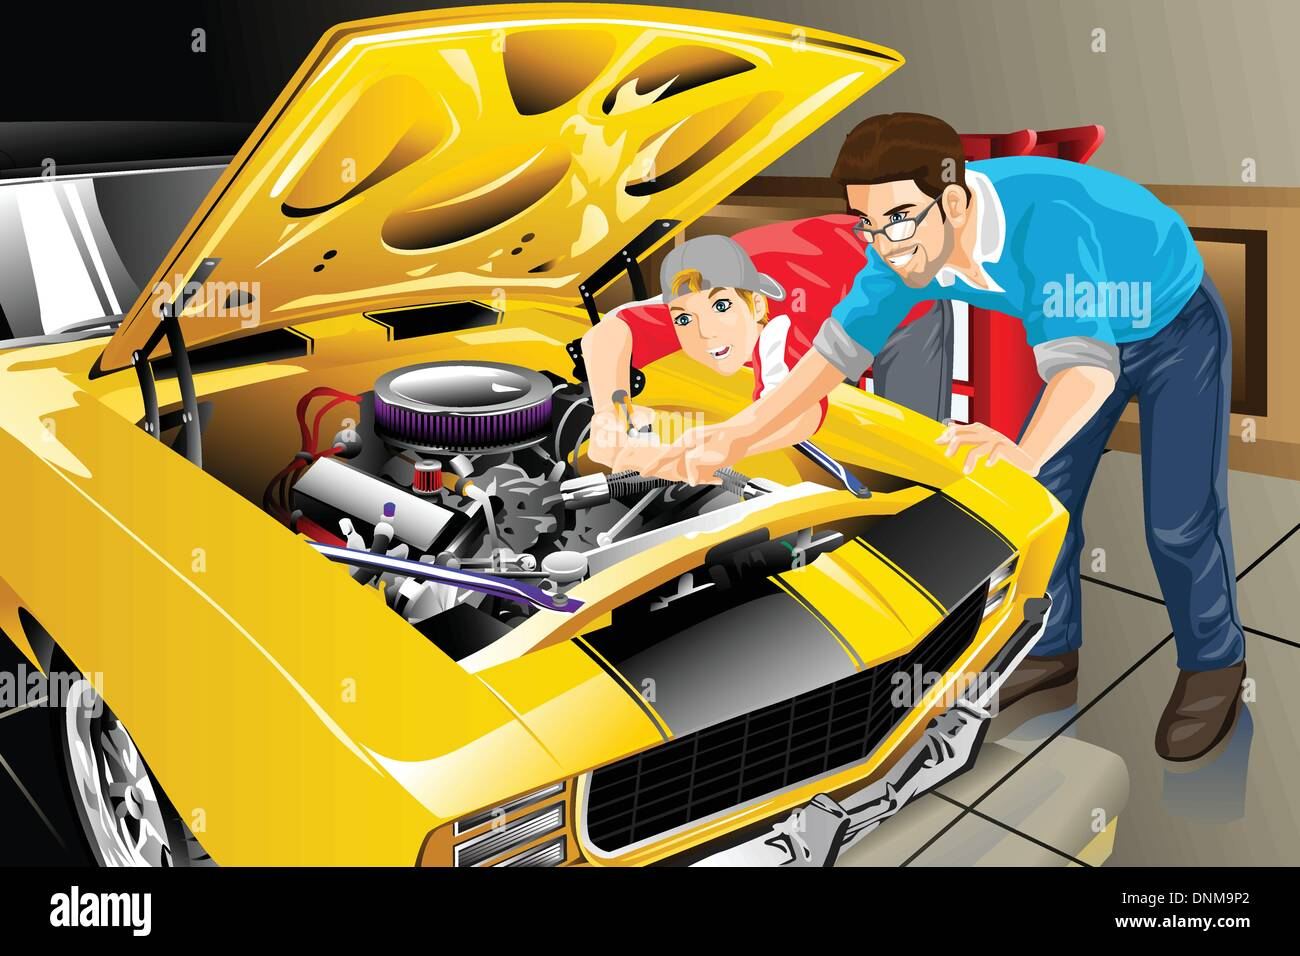 A Vector Illustration Of A Father And Son Working Together On Car In Their  Garage